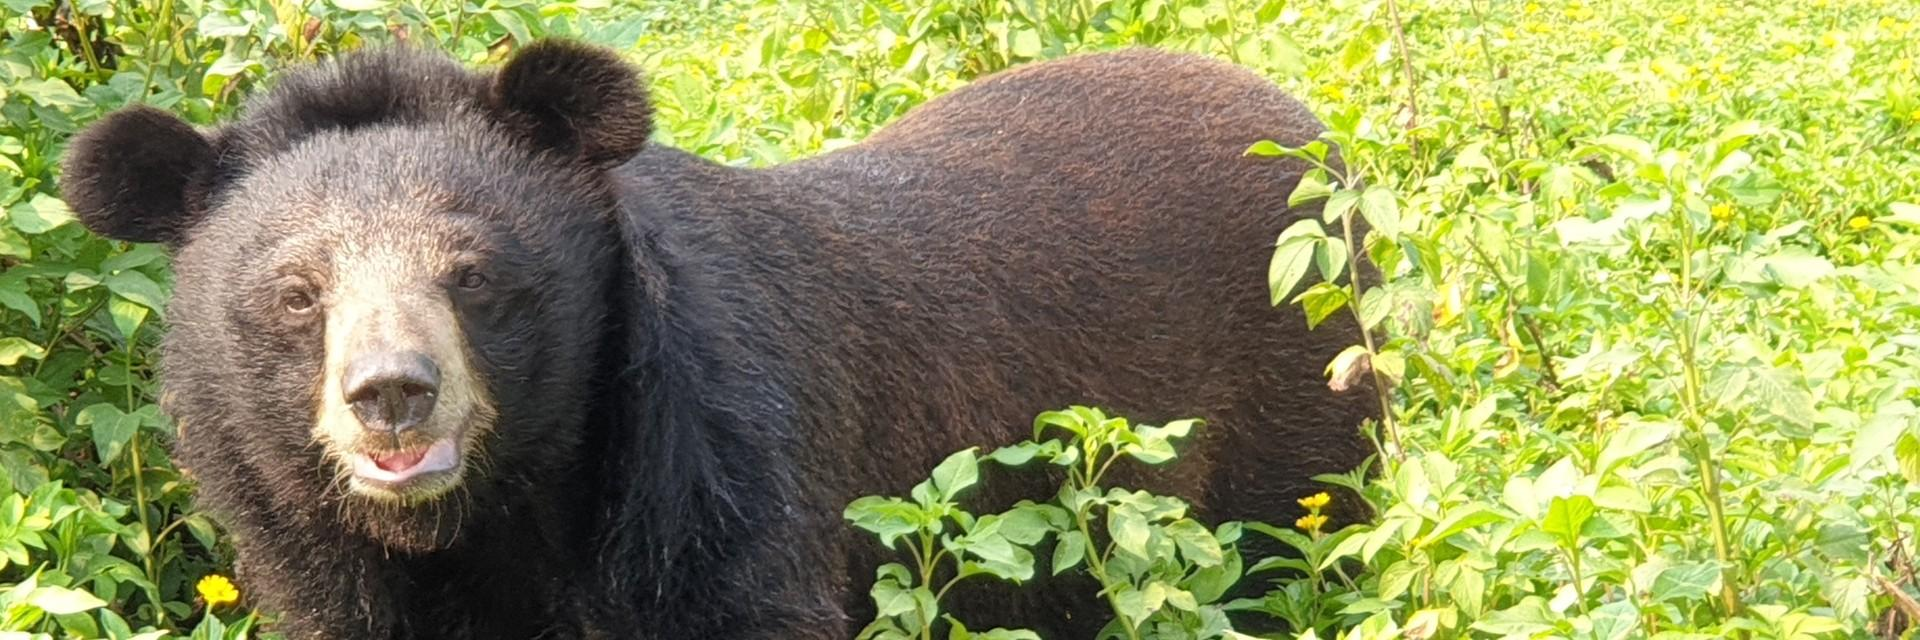 Rescued bear in our sanctuary